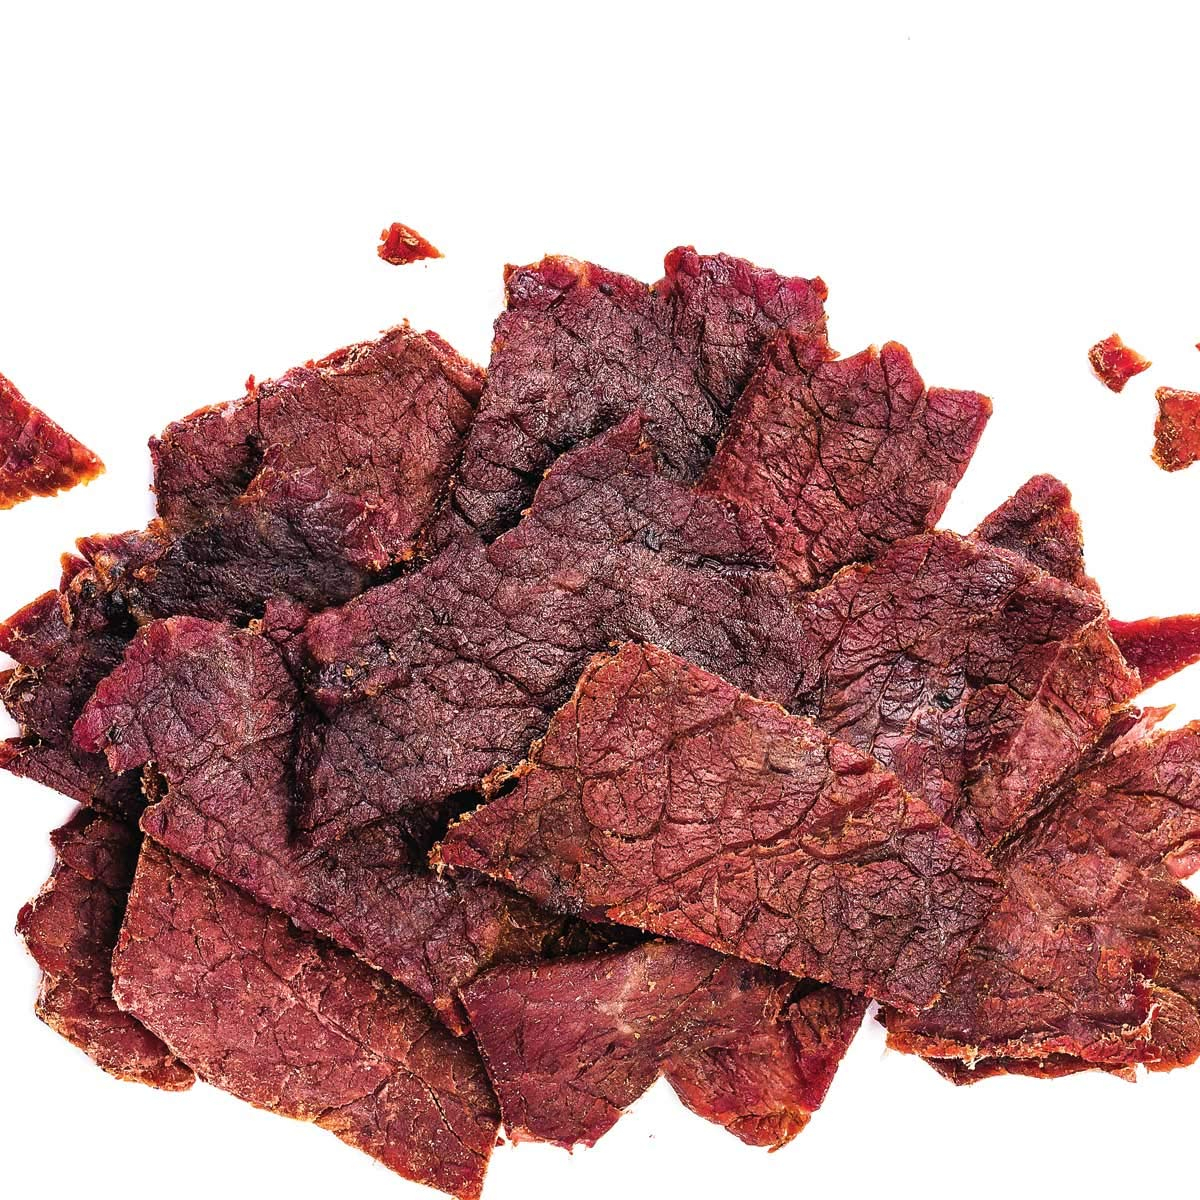 Perky Jerky Truffle and Thyme Wagyu Beef Jerky, 2.2 oz (Pack of 8) High-Protein Snack-12g of Protein-Keto, Paleo, Soy & Gluten-Free, No Added Sodium Nitrites/Nitrates-Tender and Flavorful Beef Jerky by Perky Jerky (Image #9)